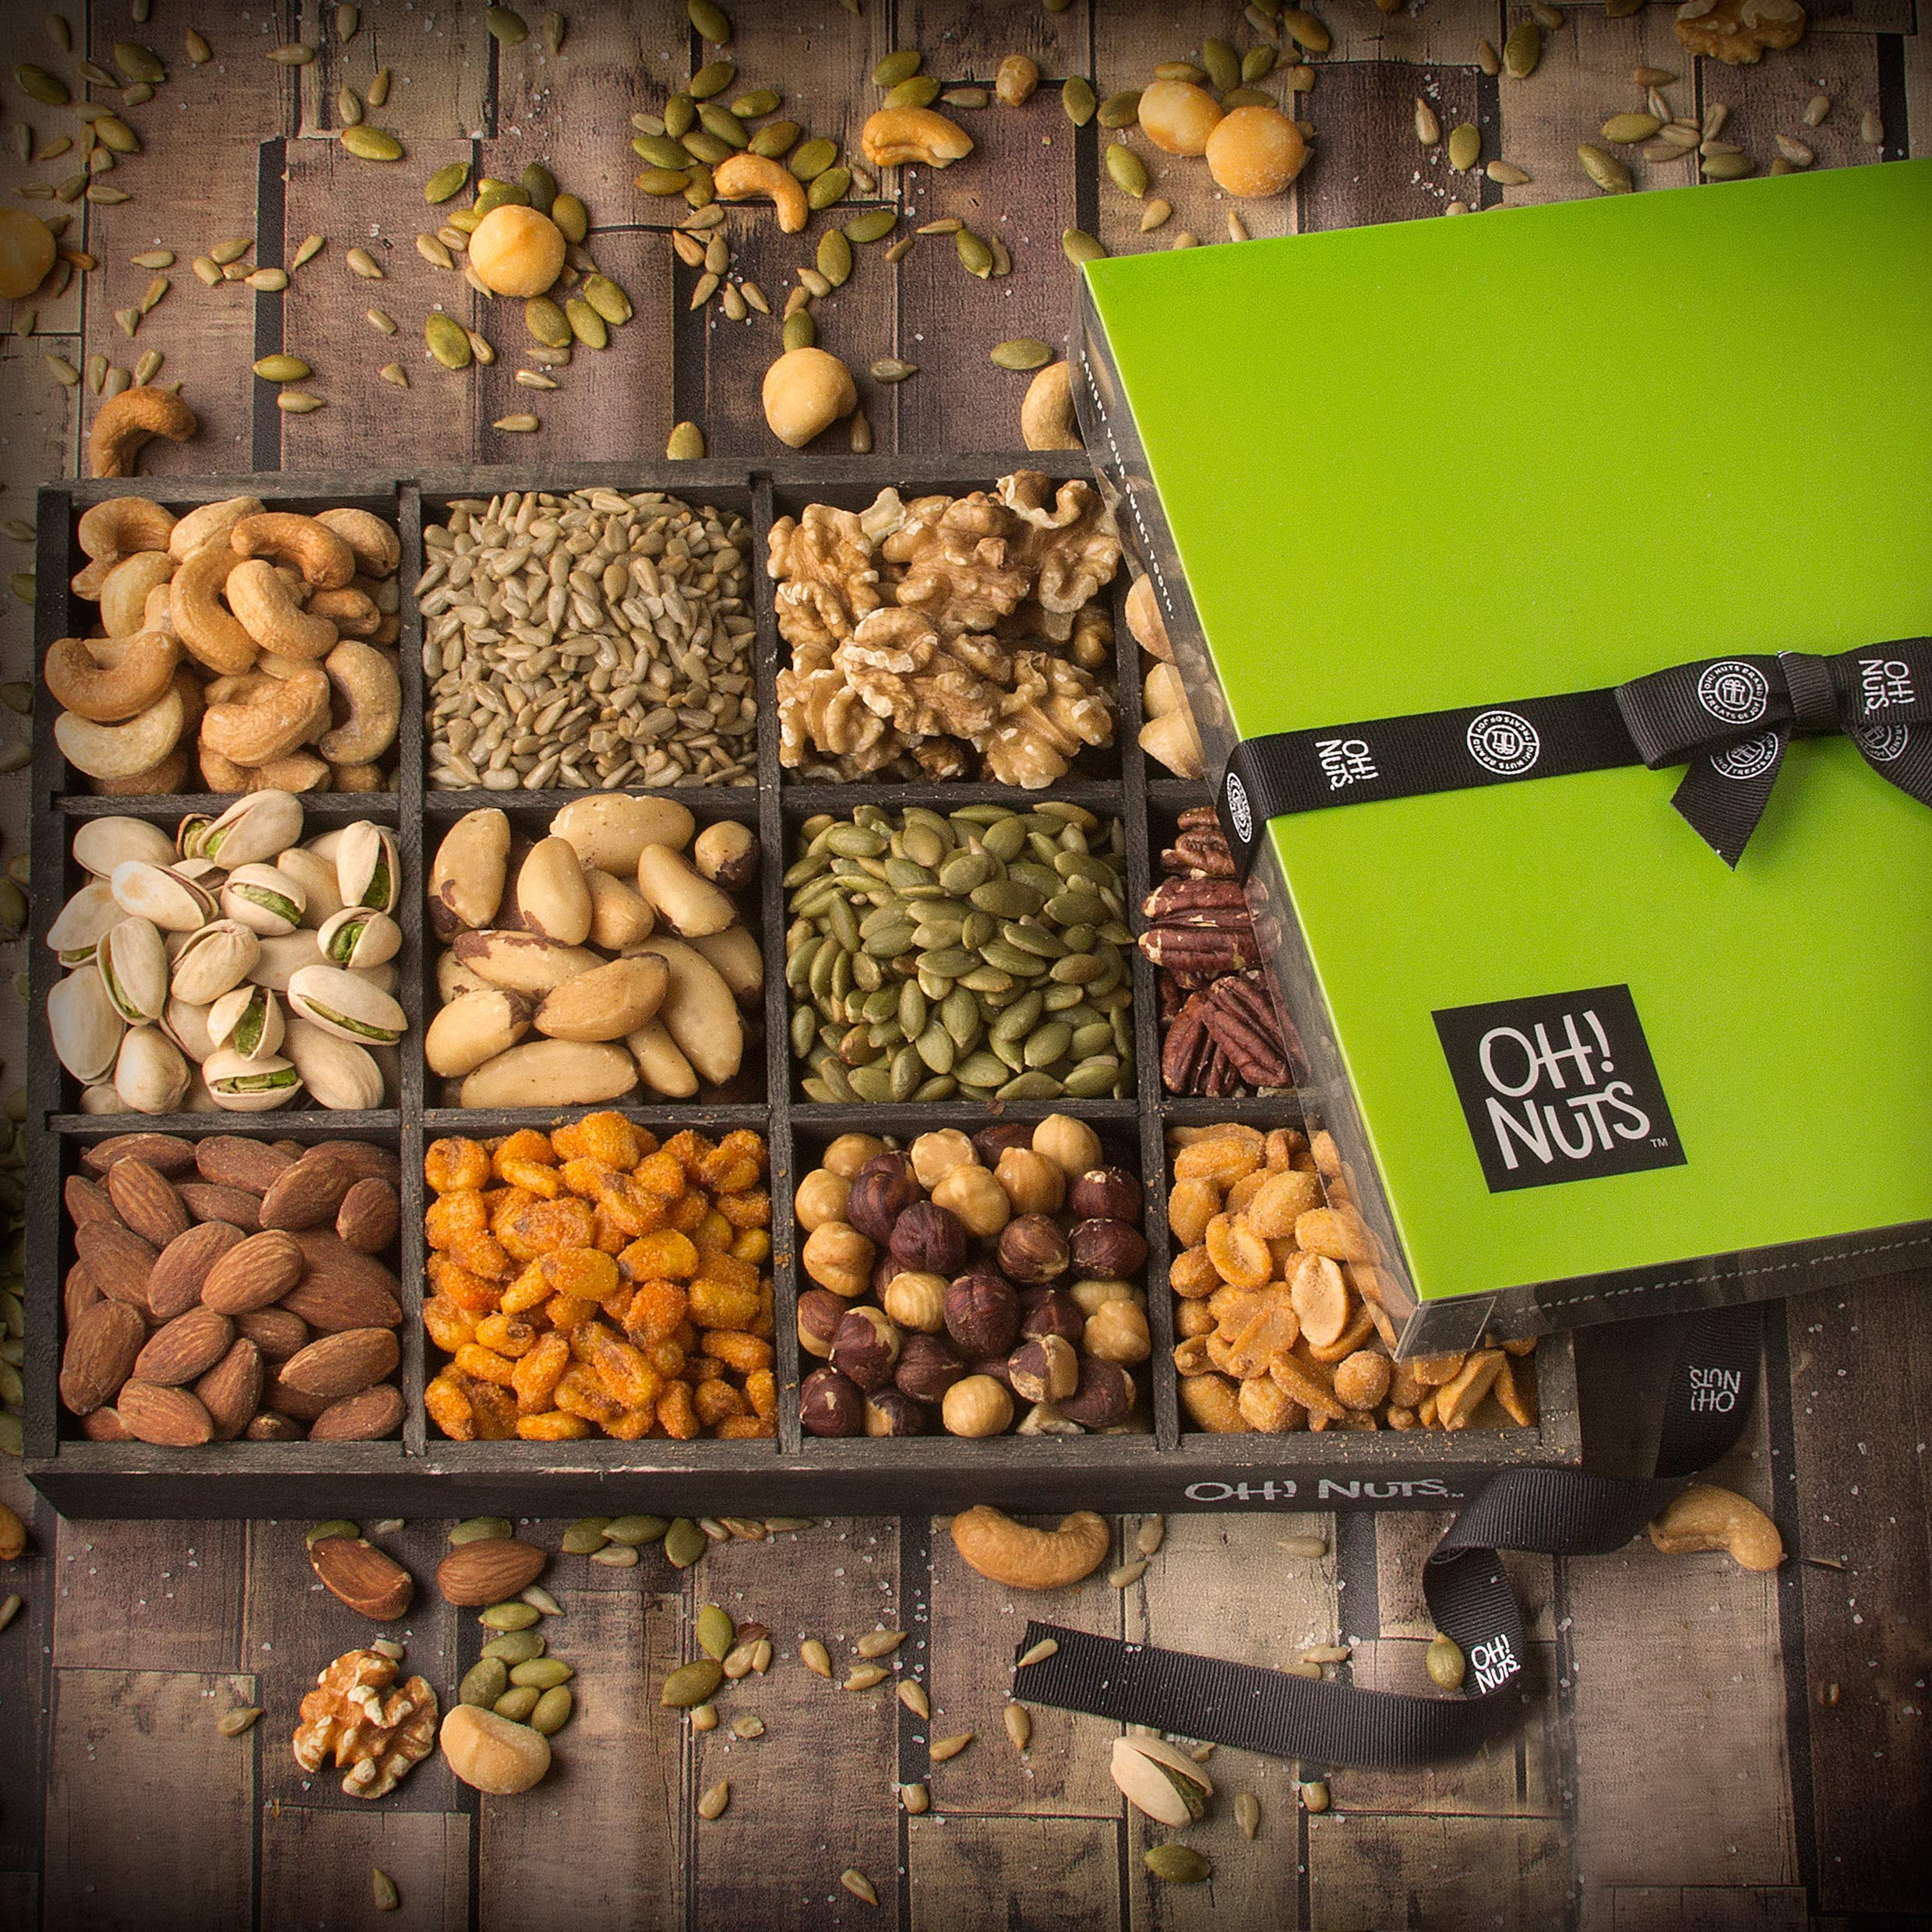 Oh! Nuts 12 Variety Mixed Nut Gift Basket, Holiday Freshly Roasted Healthy Gourmet Snack Gifts| Premium Wood Tray | Prime Christmas Food Baskets for Men & Women, Fathers & Mother's Day Unique Idea by Oh! Nuts (Image #4)